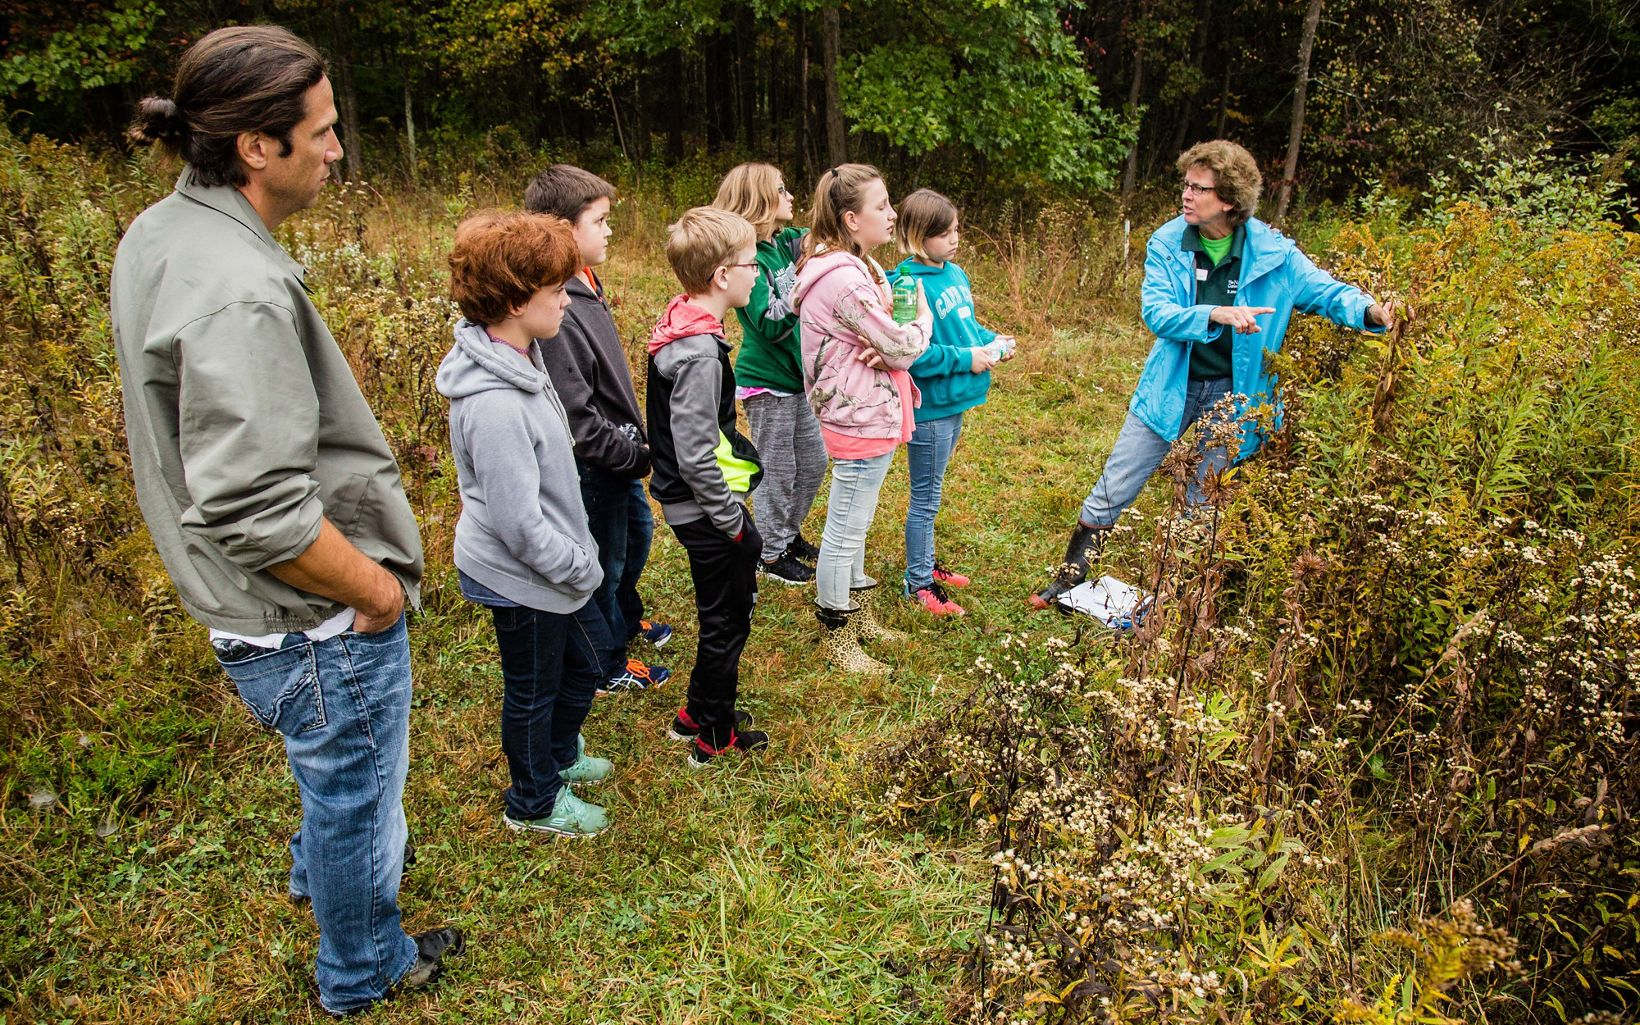 A woman in a blue jacket points toward tall plants and talks with a group of children in the fall.